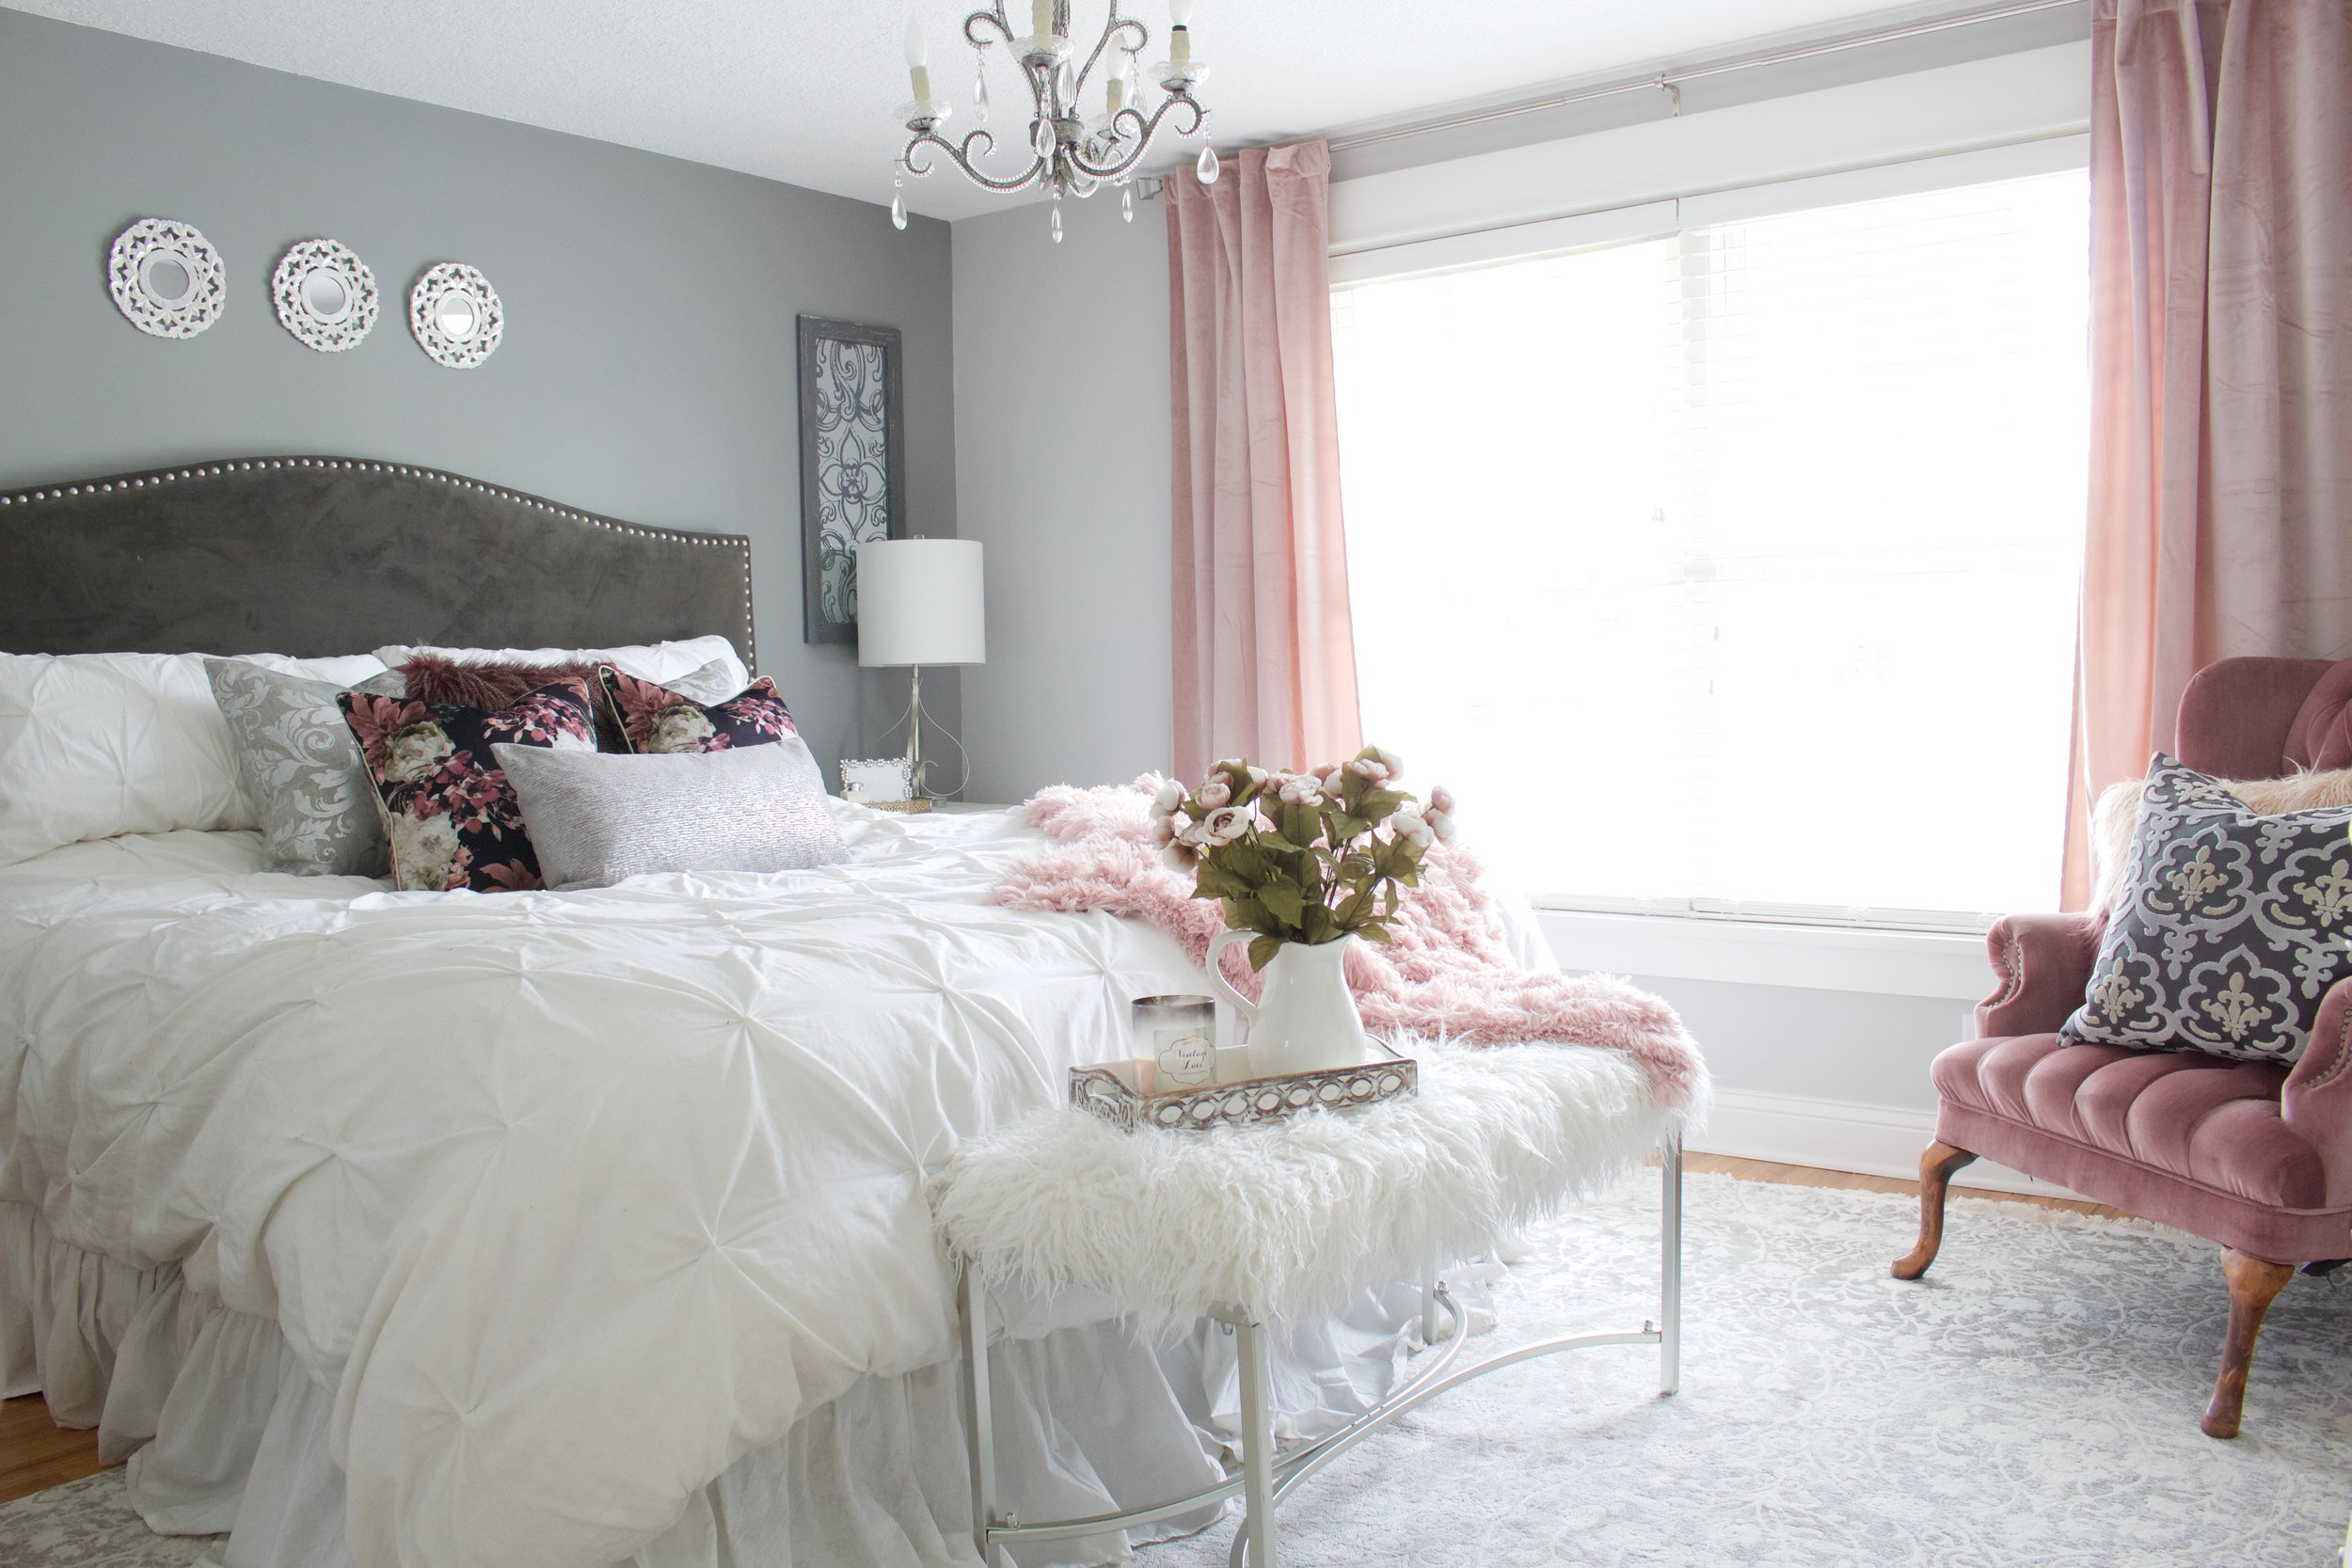 Master Bedroom Refresh with eSale Rugs | Part 2 - Styled With Lace